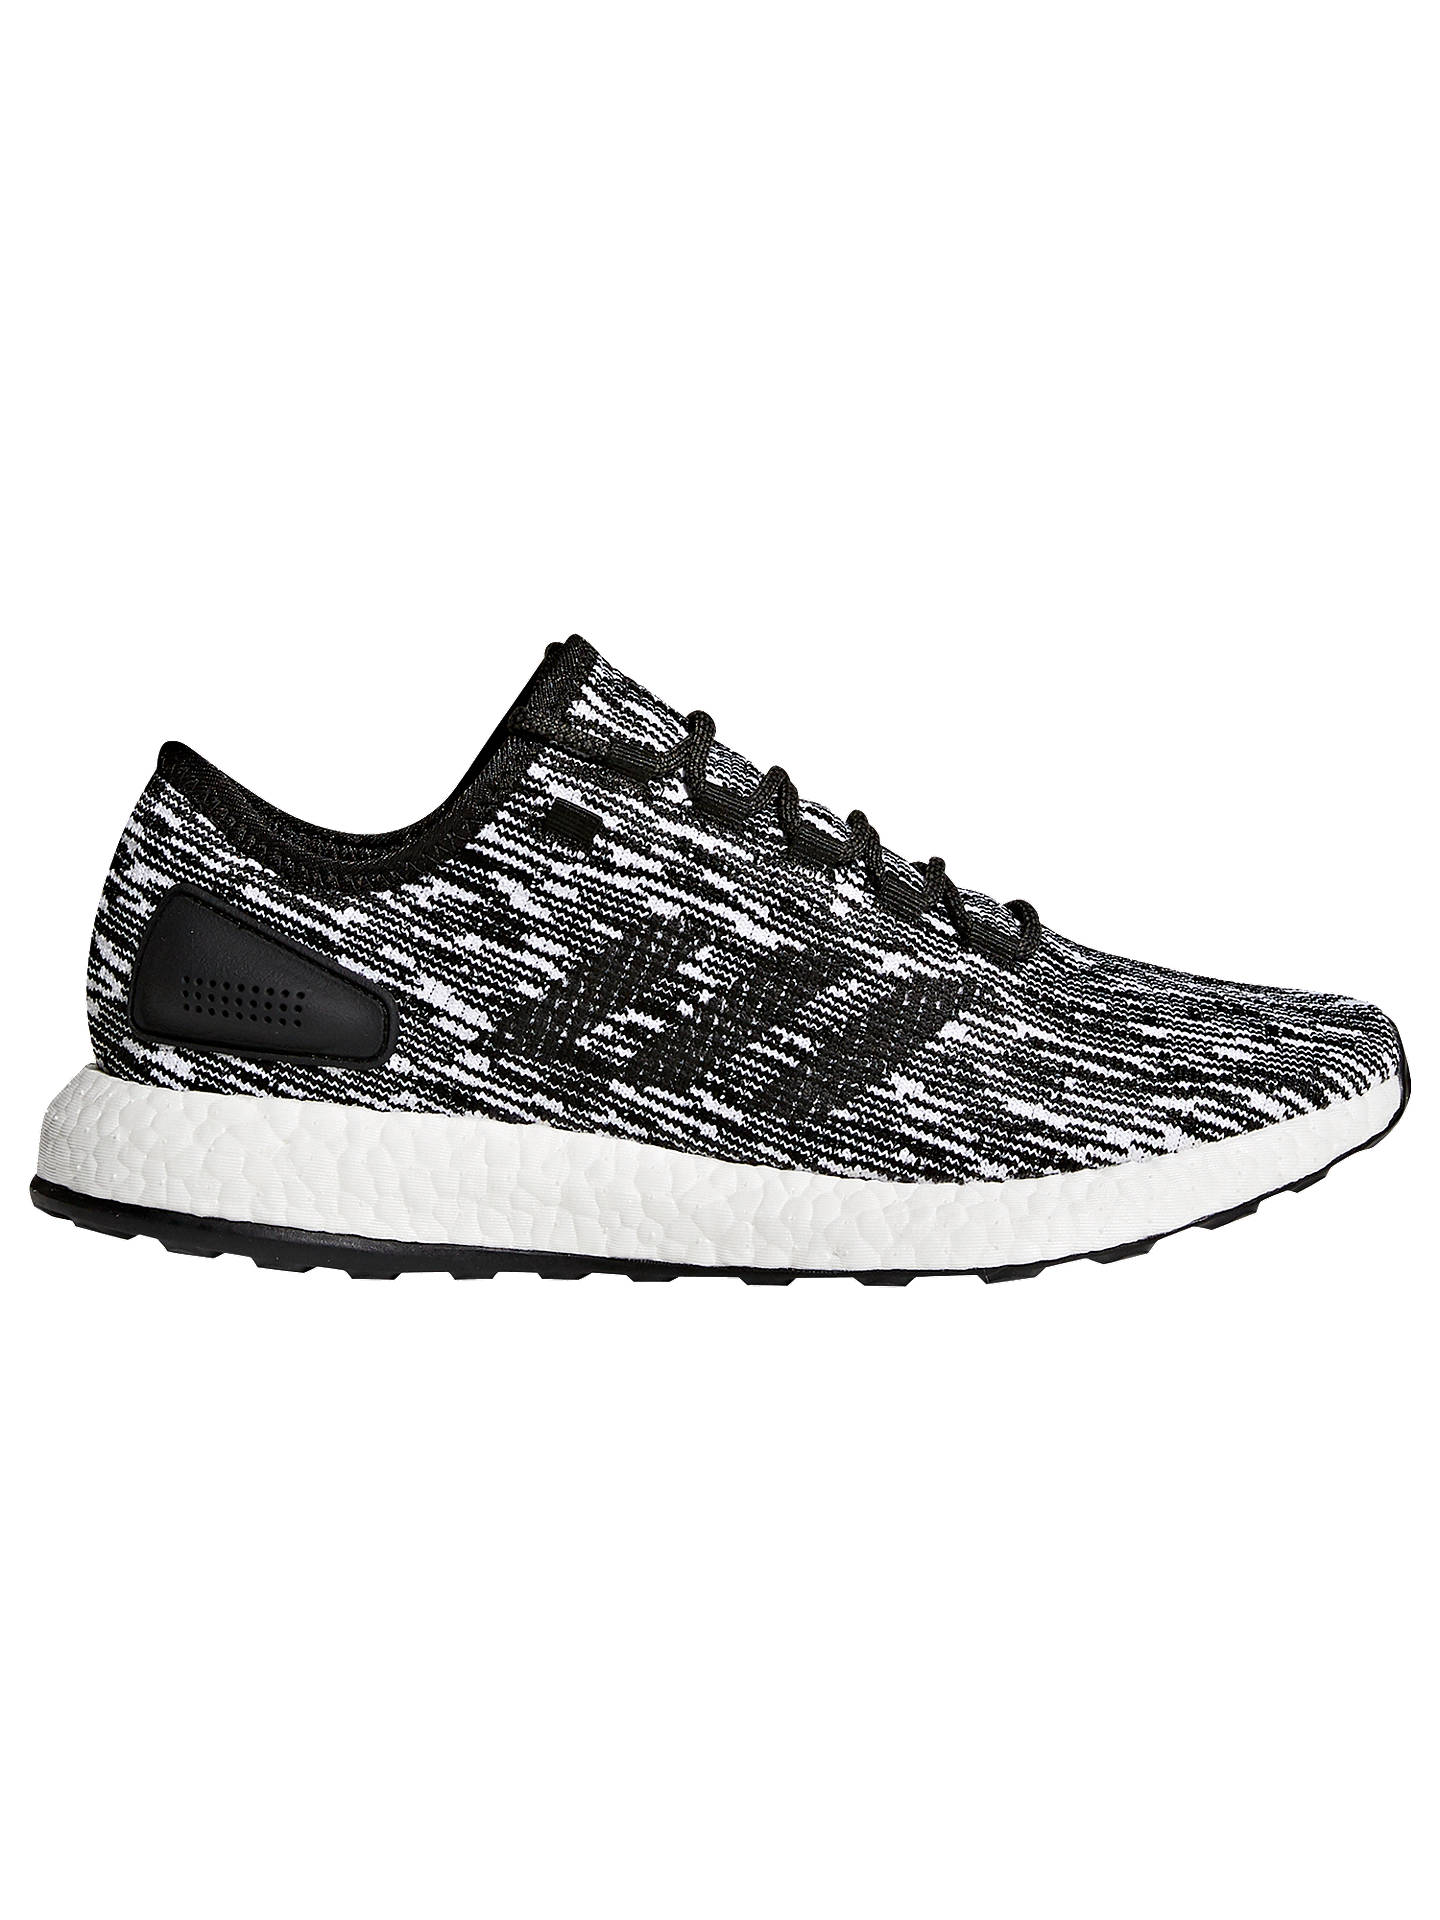 3f7ffbed5e77d Buy adidas Pureboost Men s Running Shoes